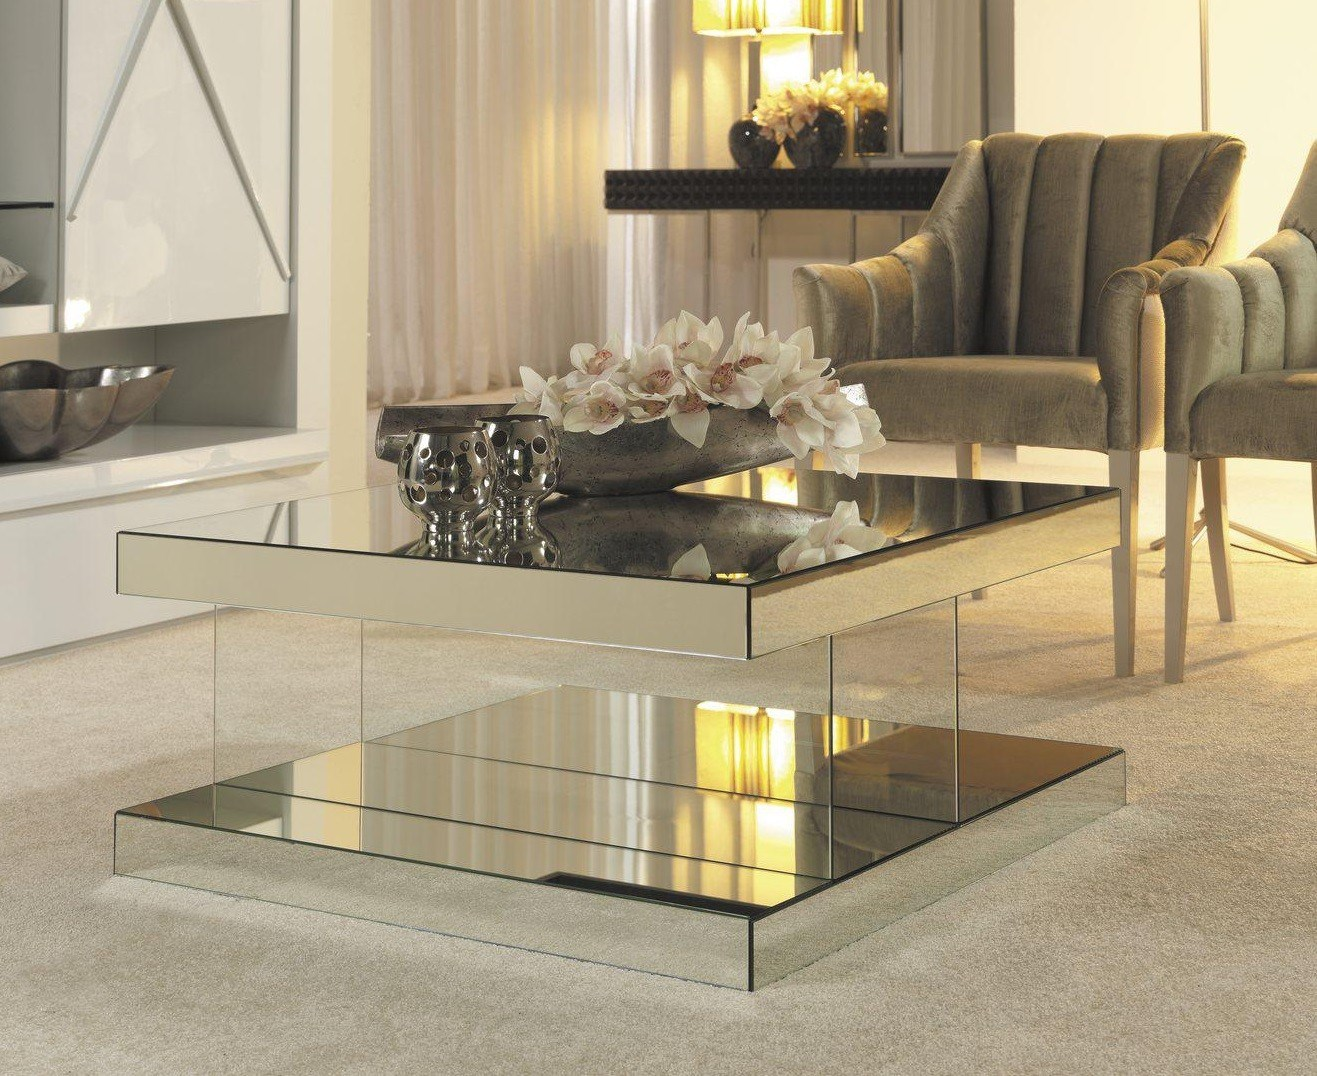 furniture accessories unique modern mirrored glass accent table beautiful living room decorating ideas with square coffee and small mid century style leather armchairs unusual